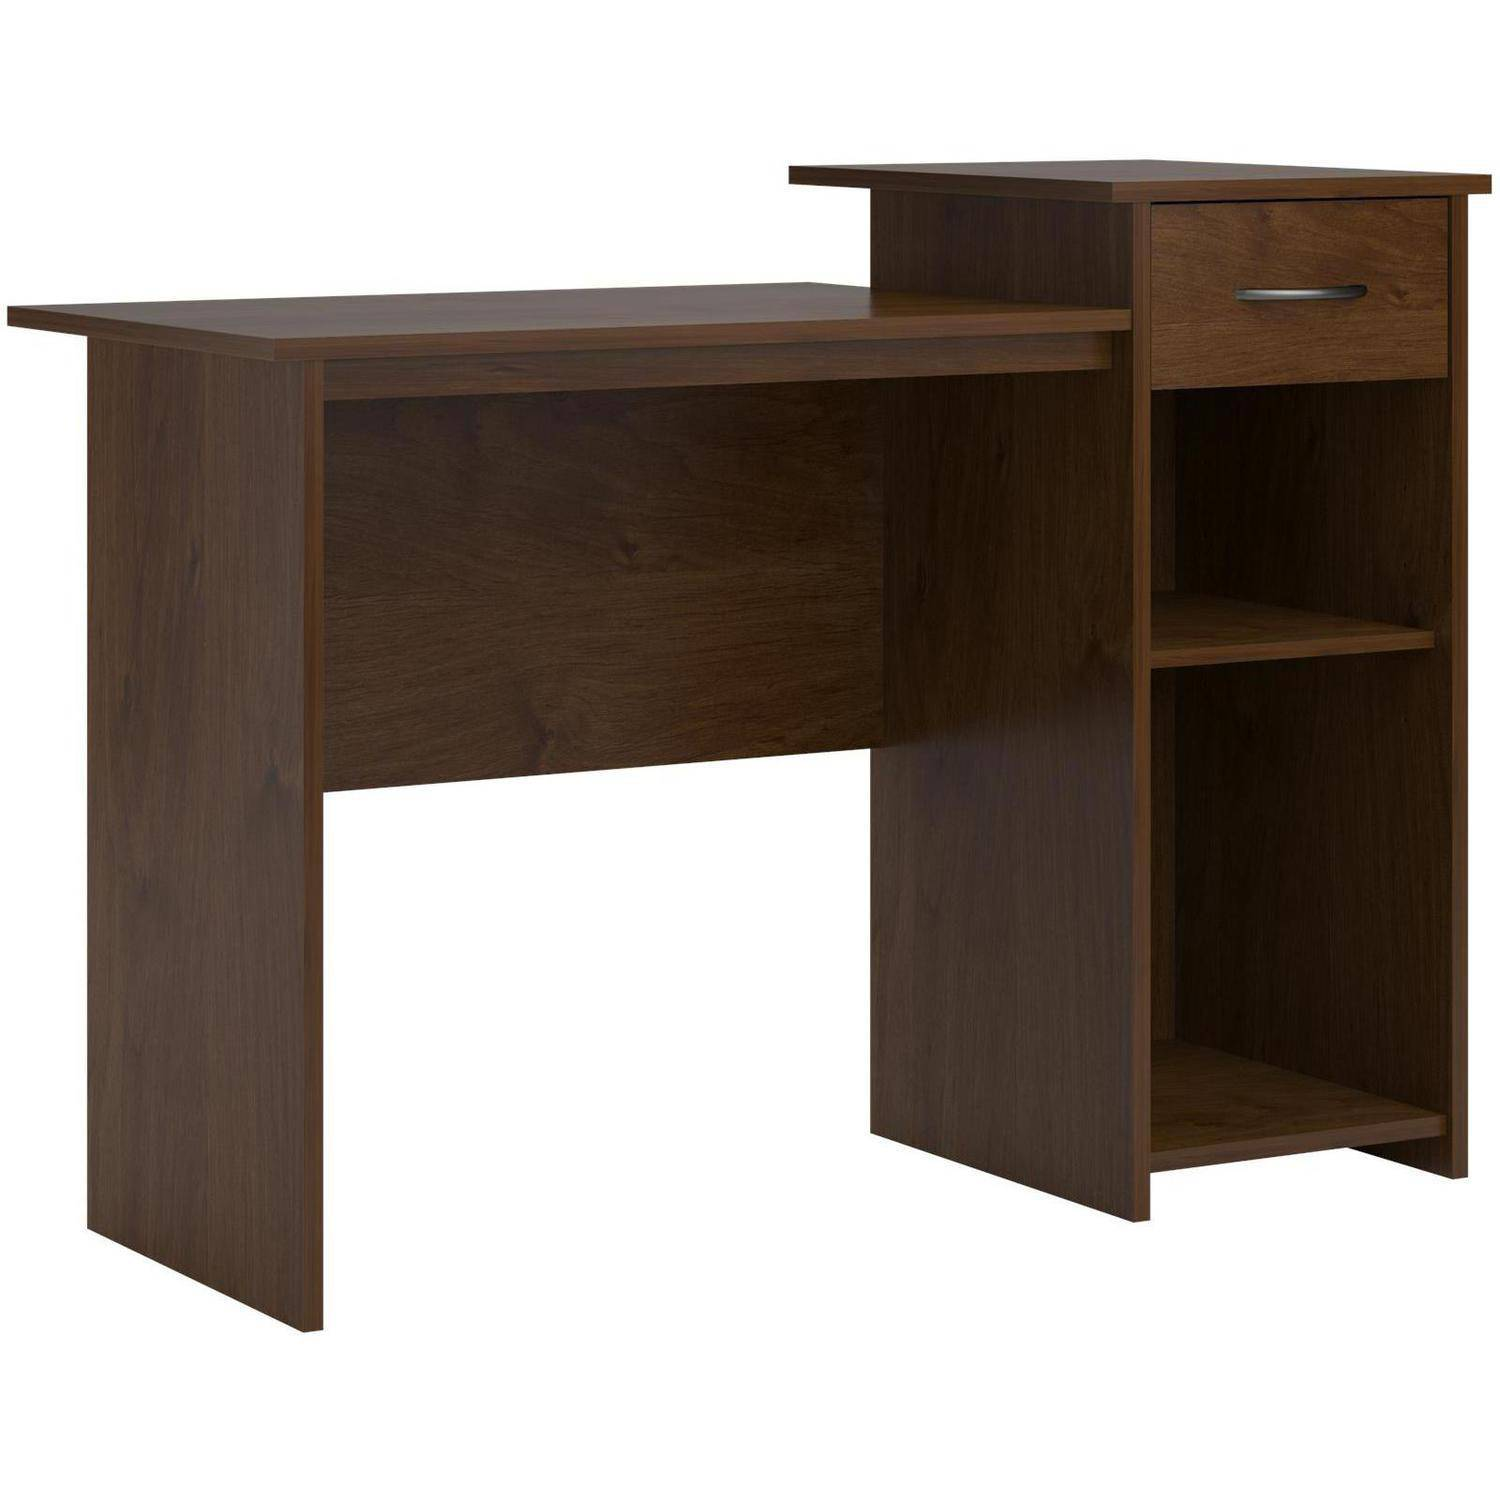 Elegant Walmart Desk and Chair Set